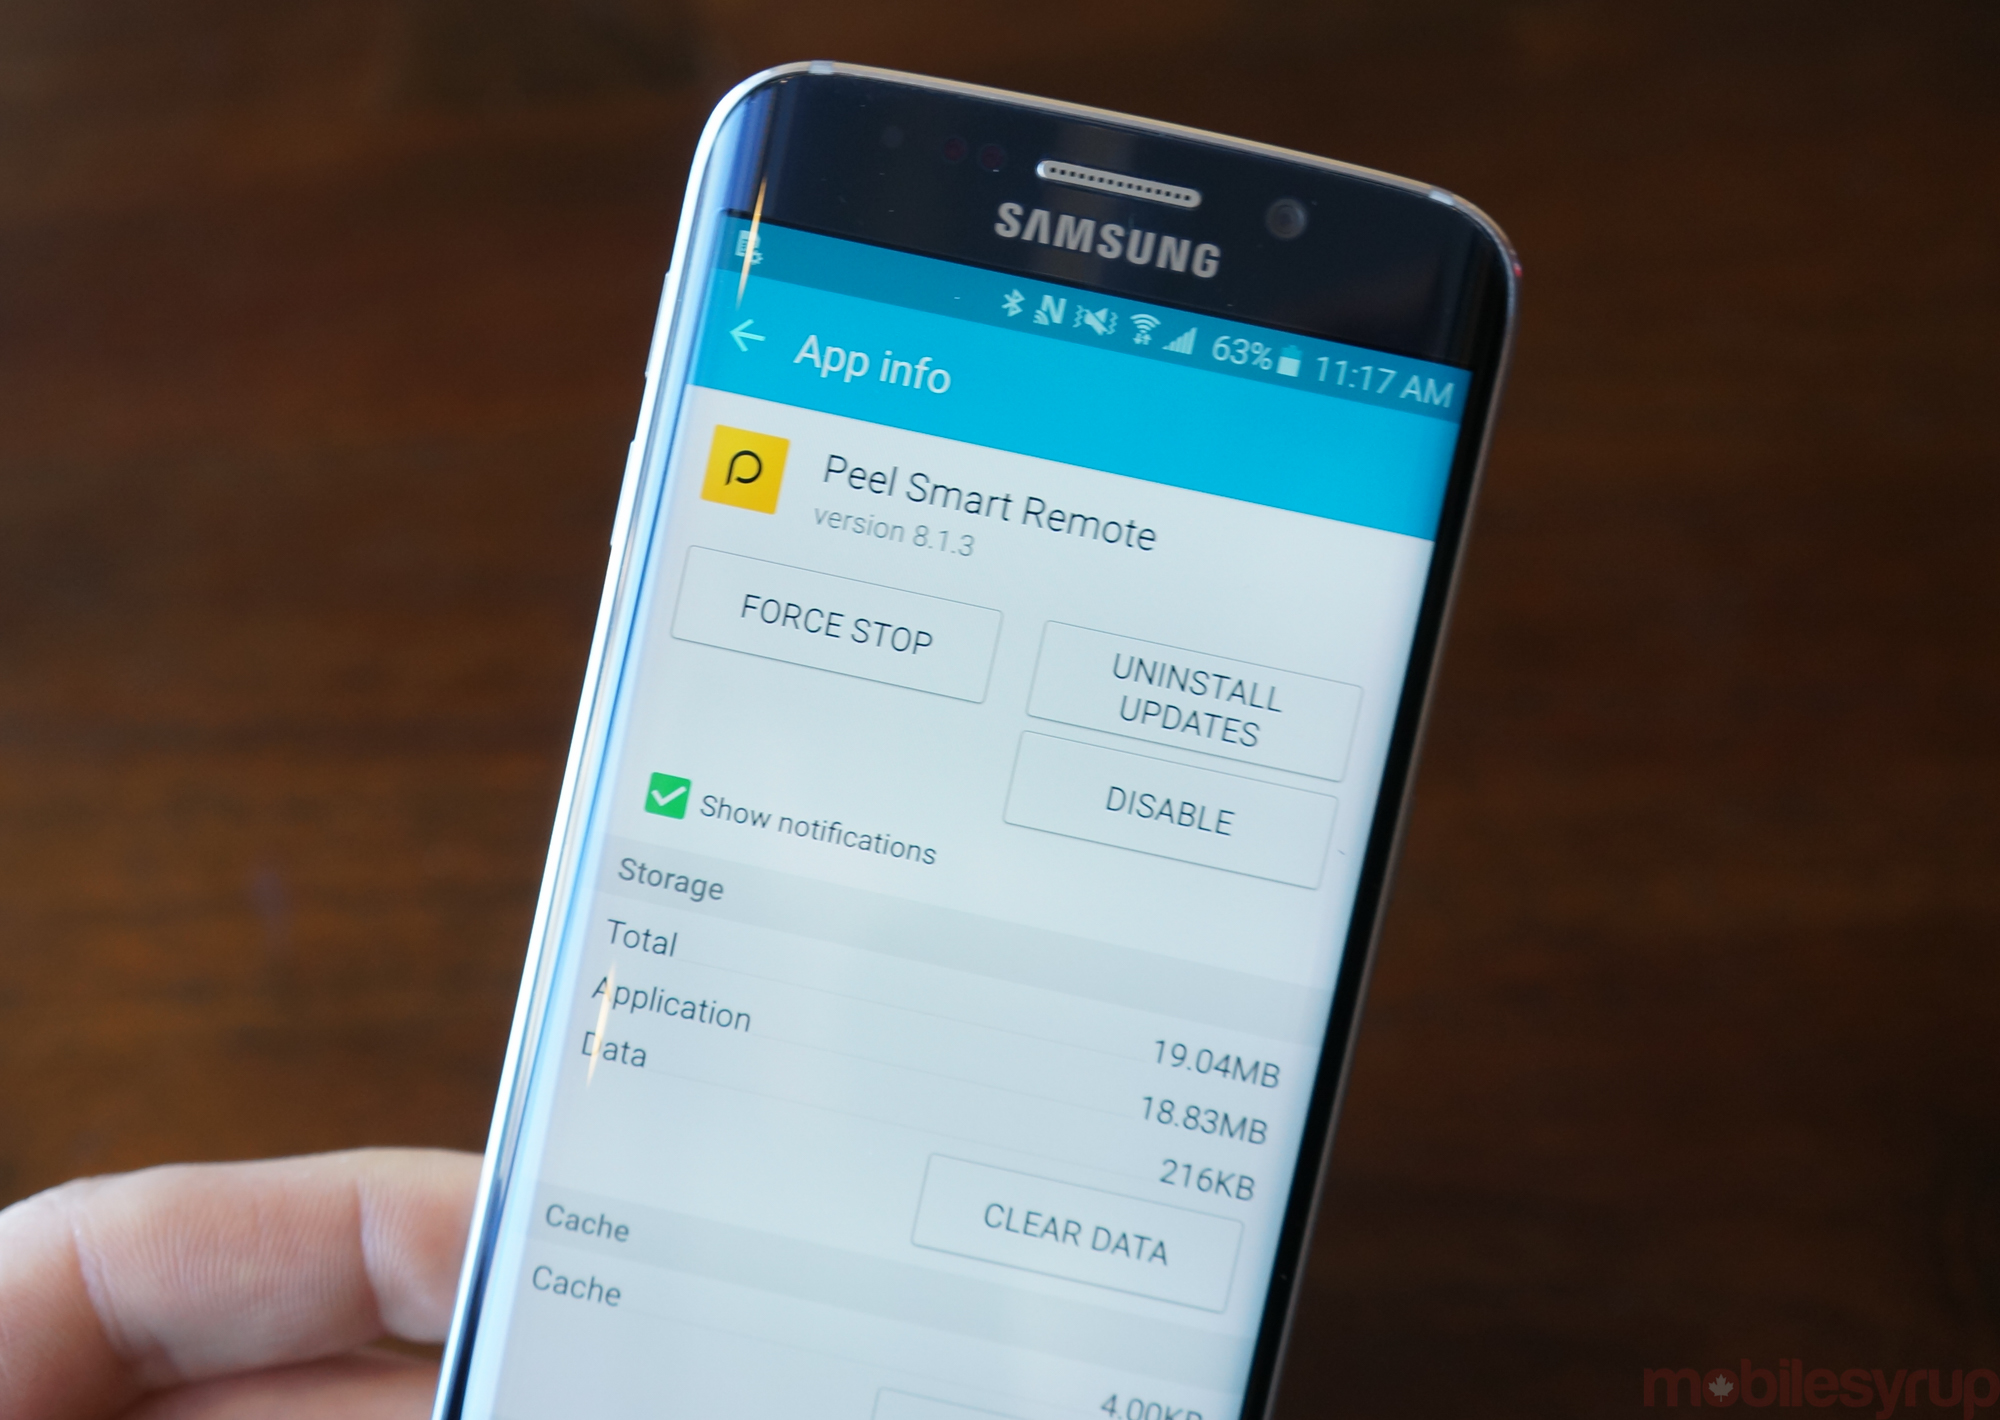 Sorry, Samsung won't let you remove most apps from the